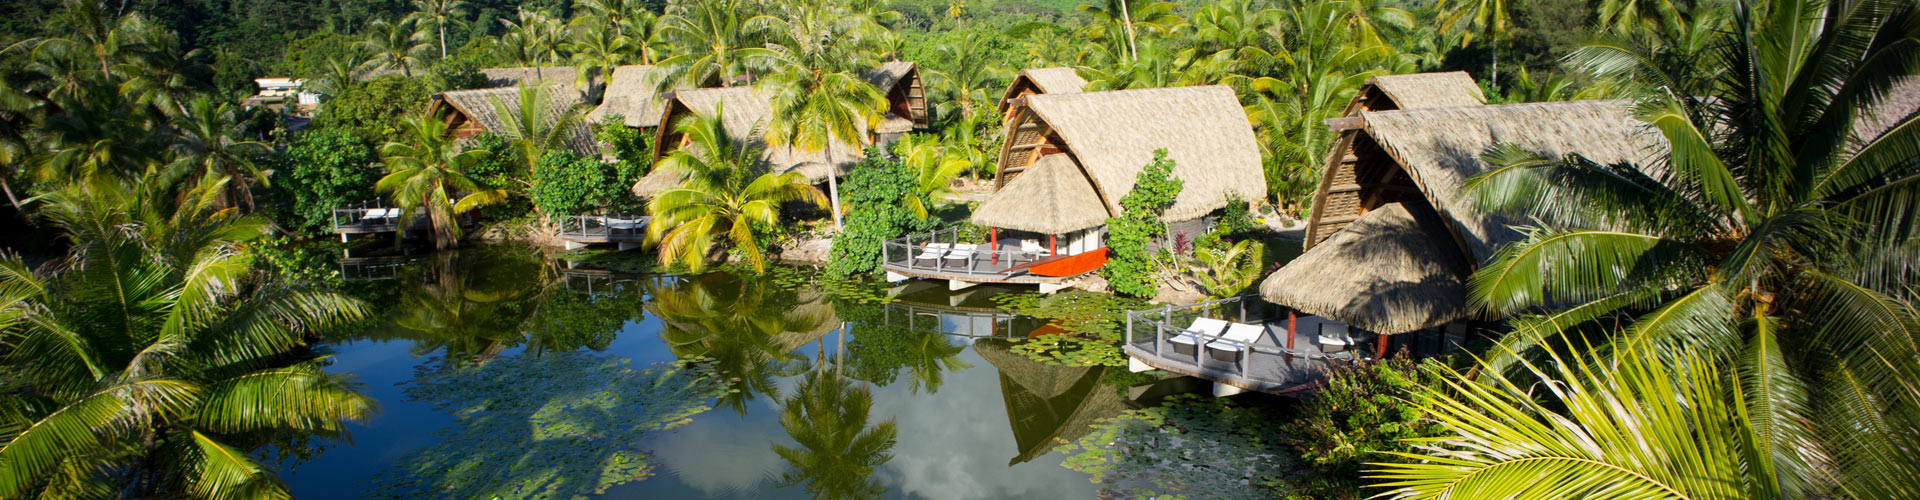 Aeral view of the hotel Maitai Lapita Village Huahine